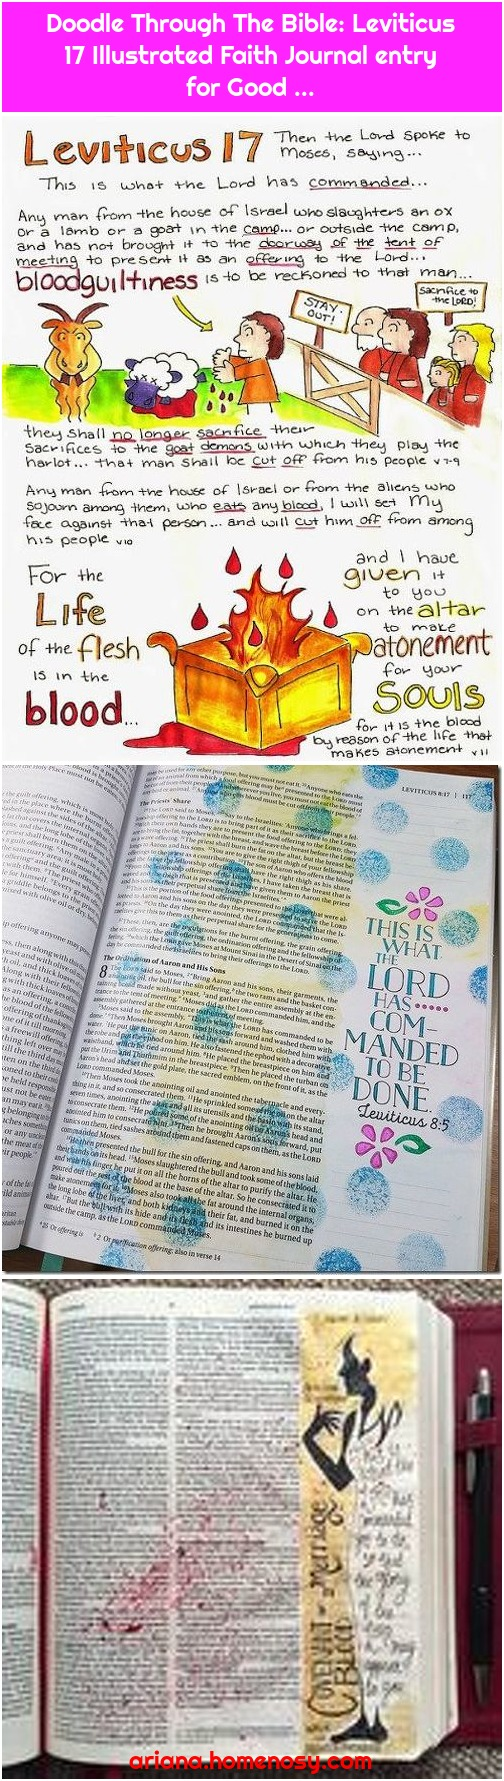 Doodle Through The Bible: Leviticus 17 Illustrated Faith Journal entry for Good ...